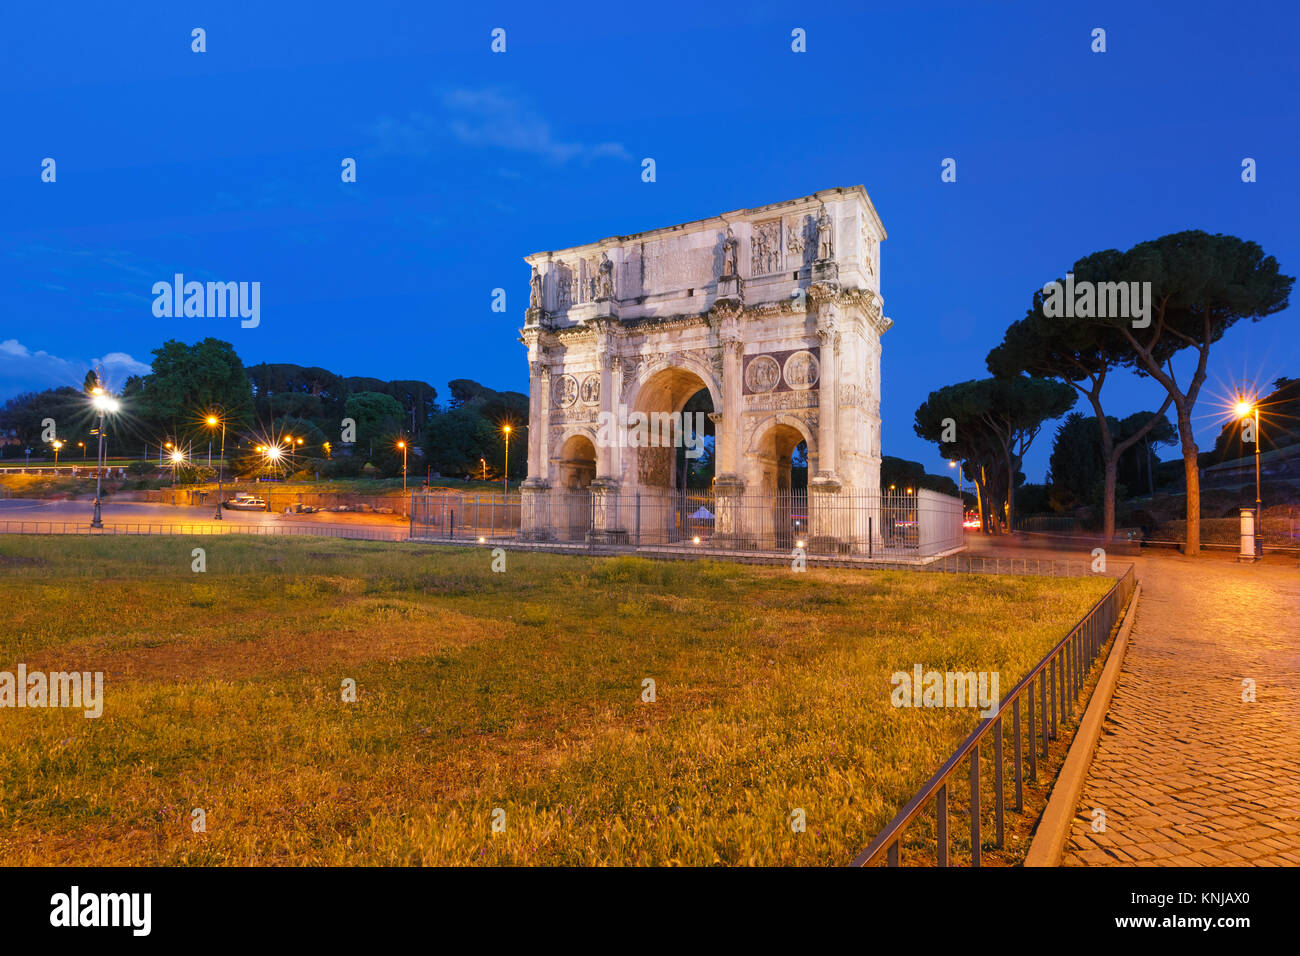 The Arch of Titus at night, Rome, Italy. - Stock Image